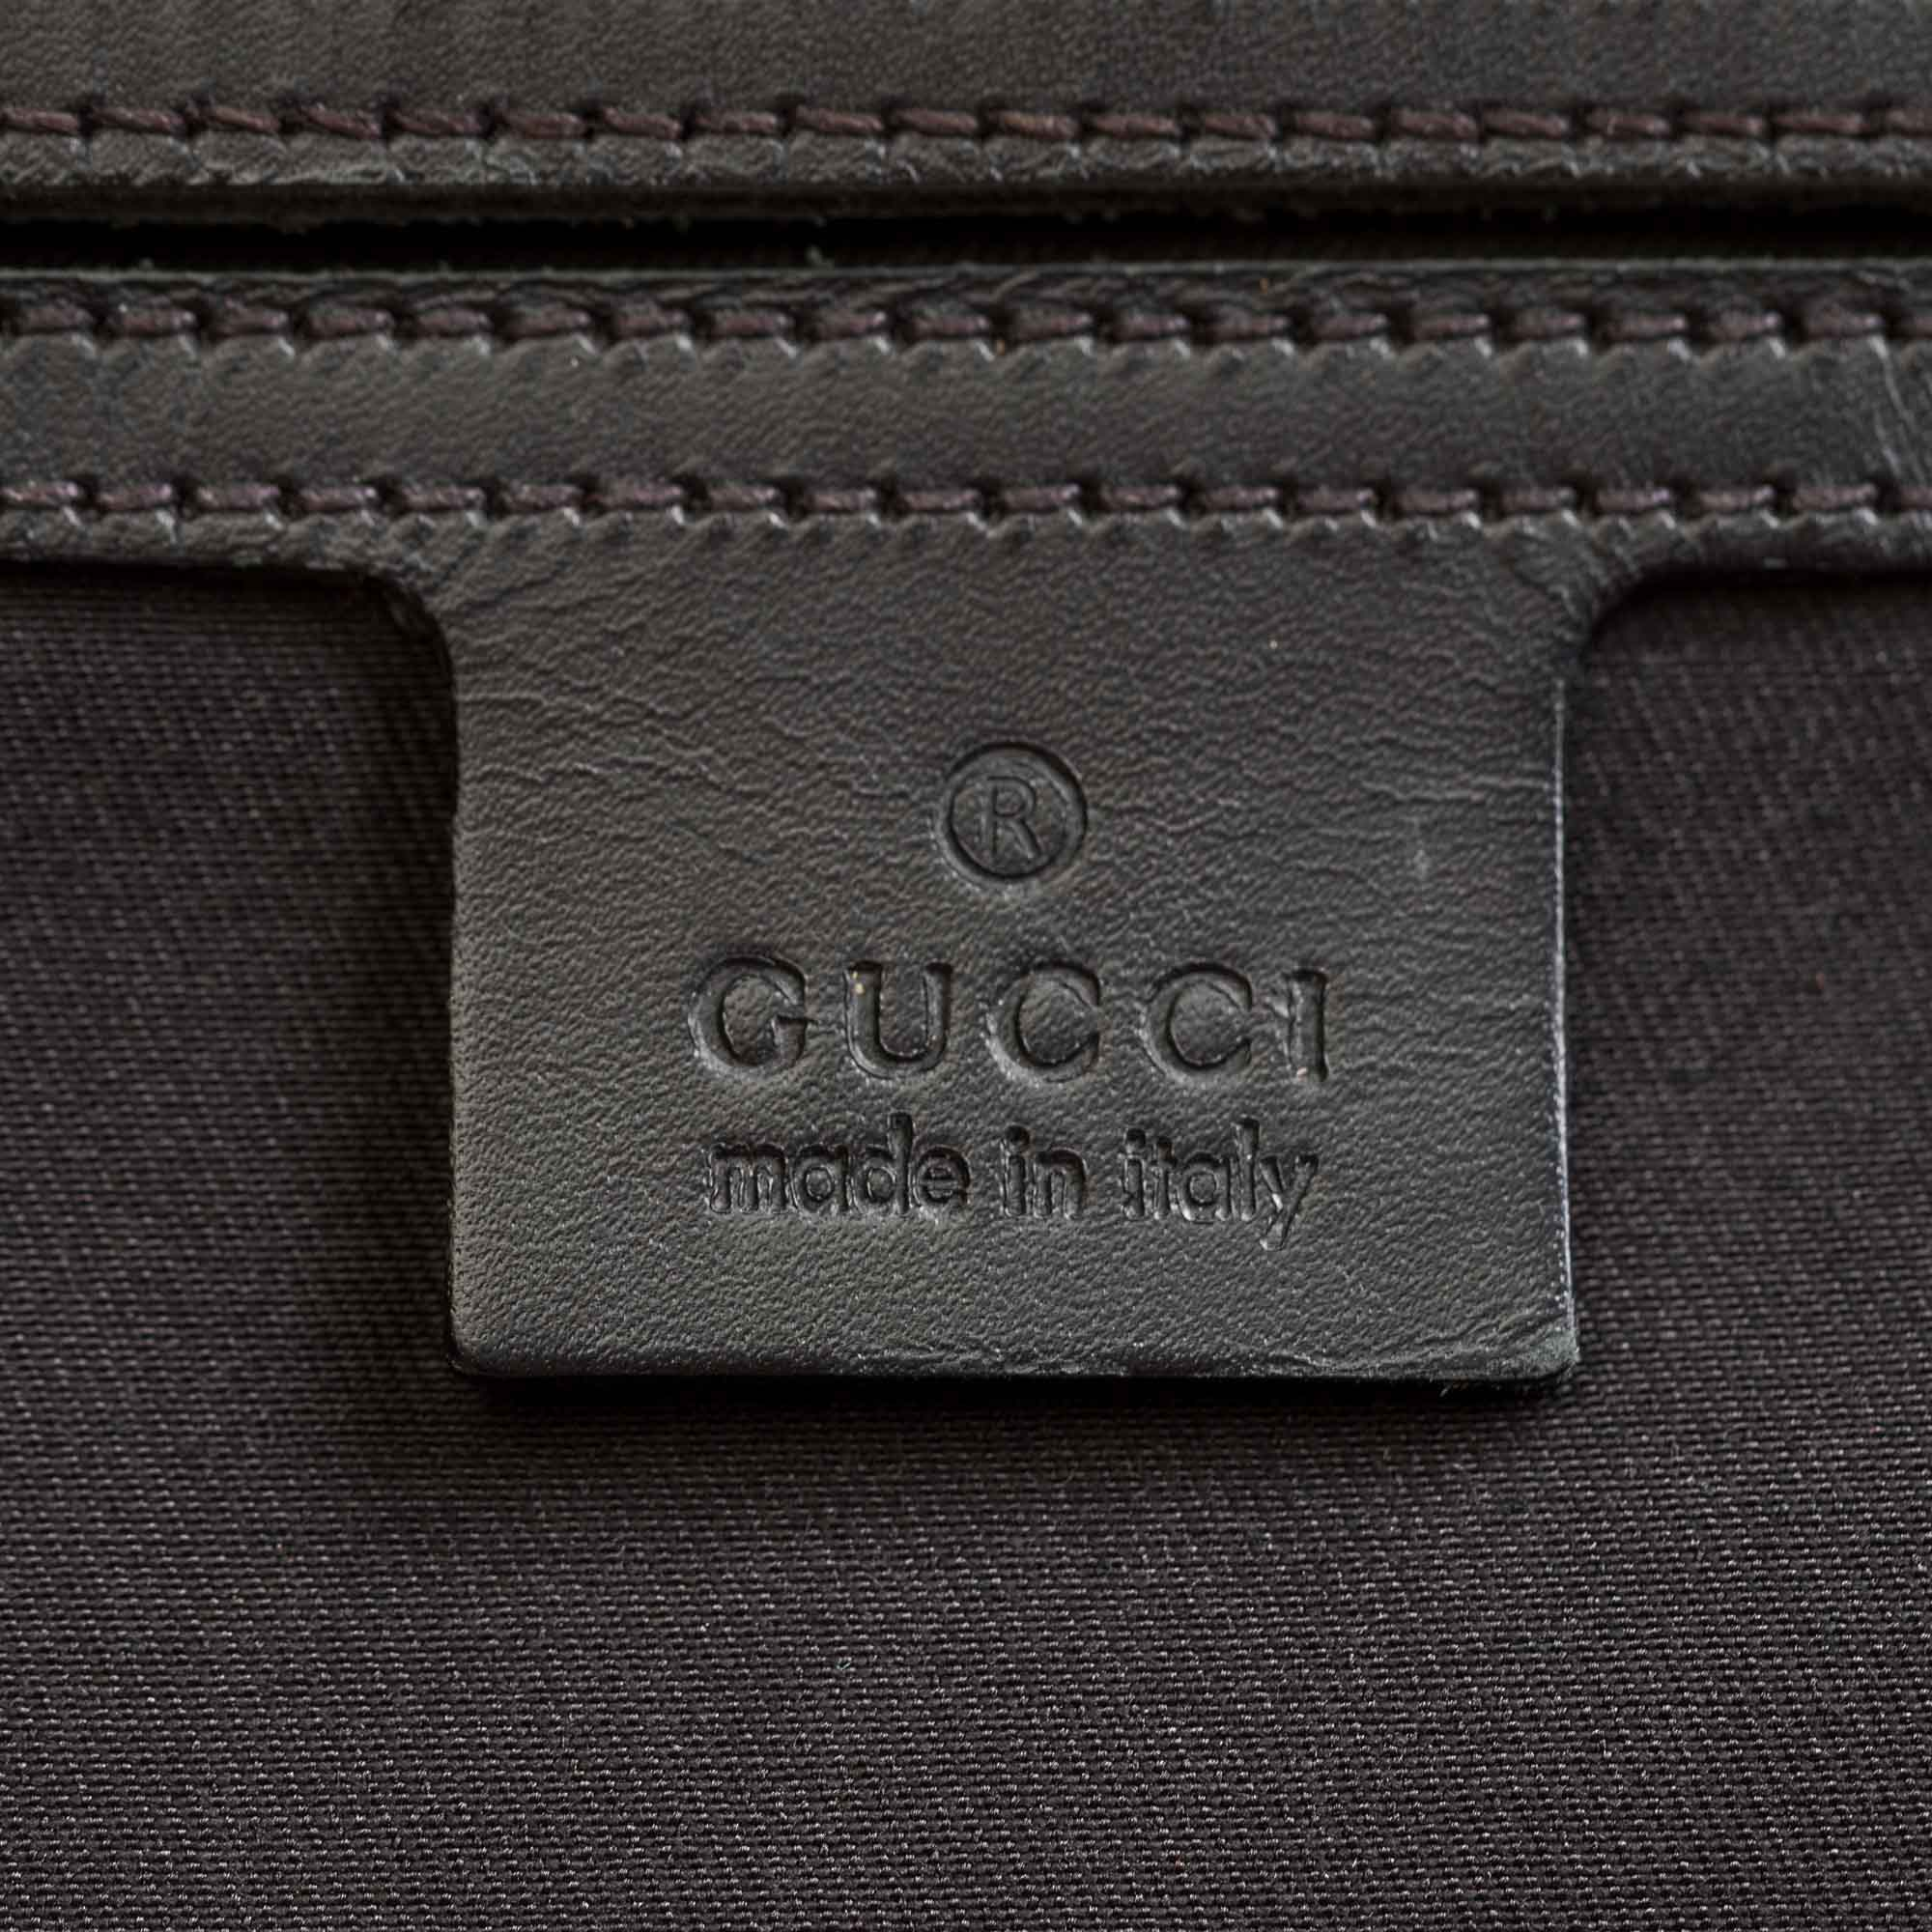 5546c314fe11 ... GUCCI SUPREME WEB MESSENGER BAG Shop online the best value on authentic  designer used preowned consignment ...